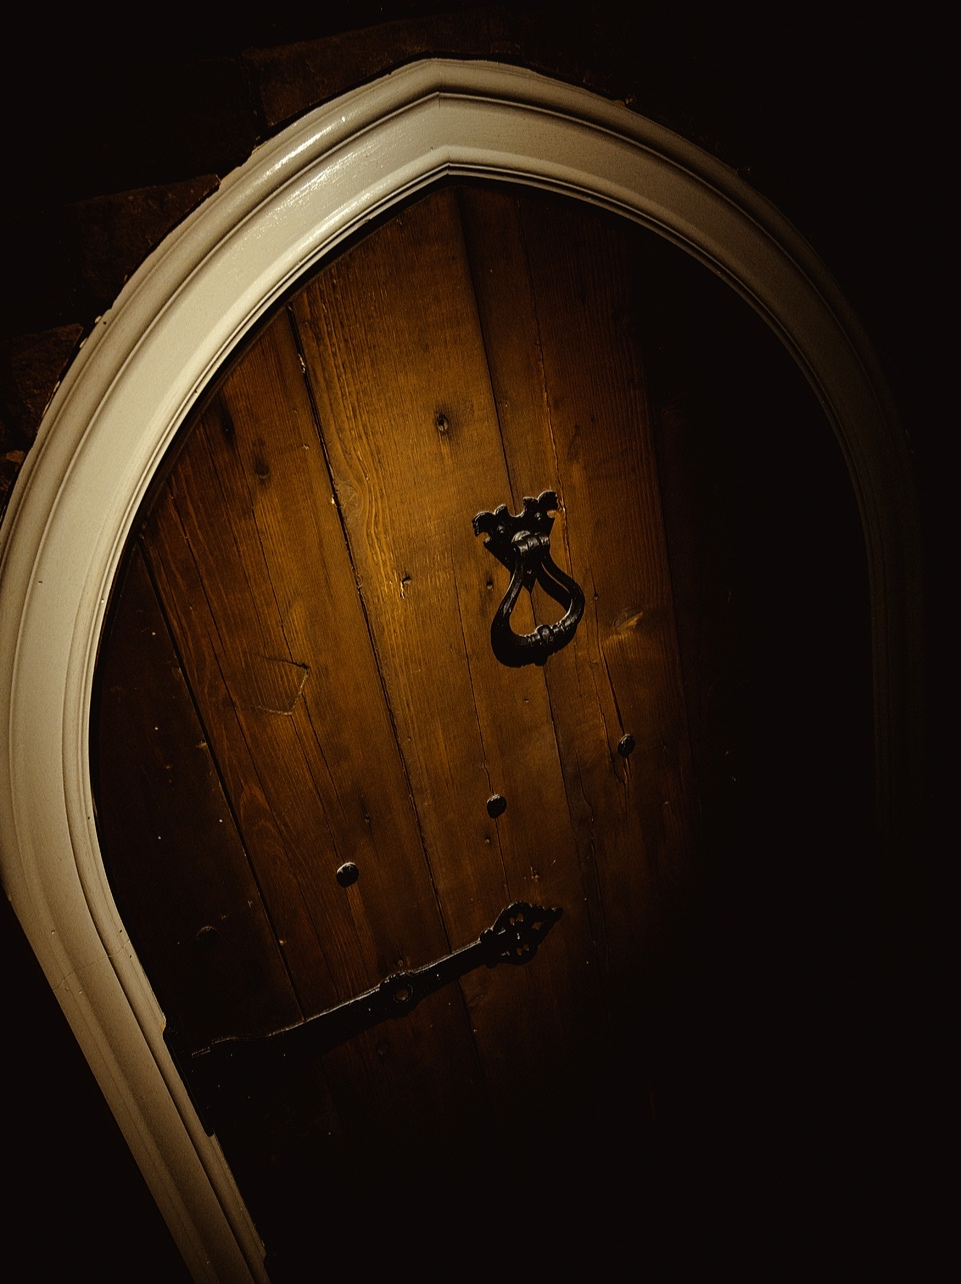 bar-trauma-gothic-door.jpg